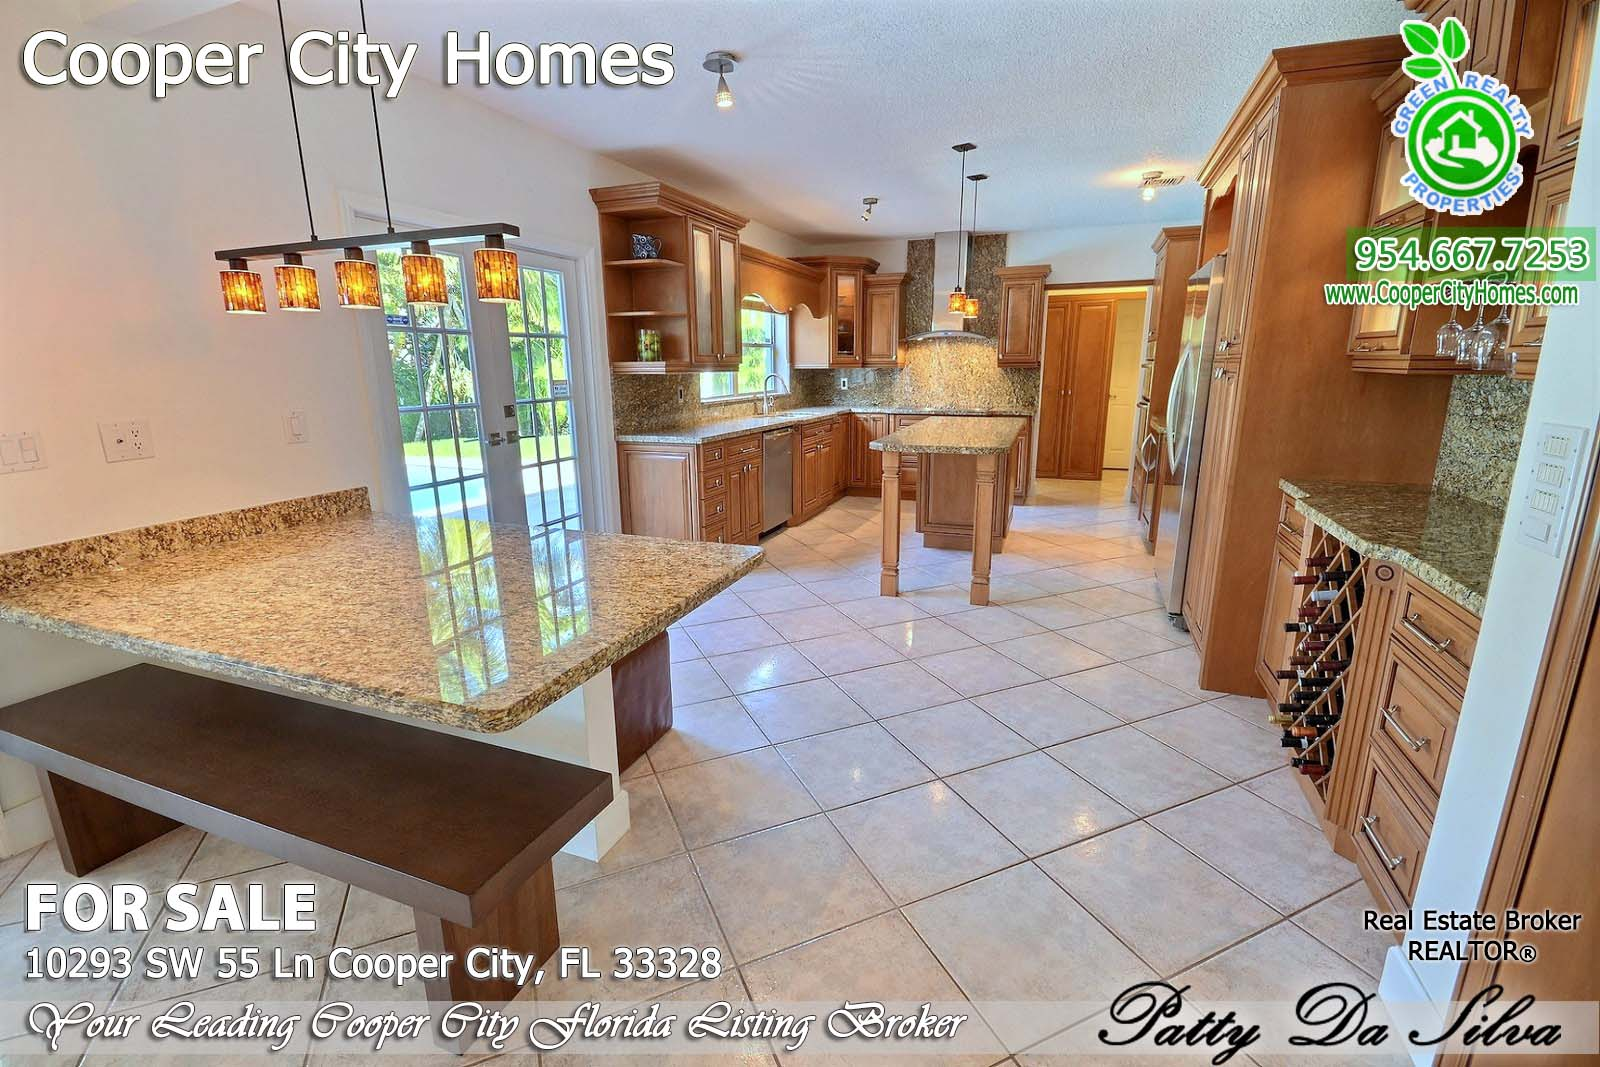 10293 - Cooper City Homes For Sale (9)